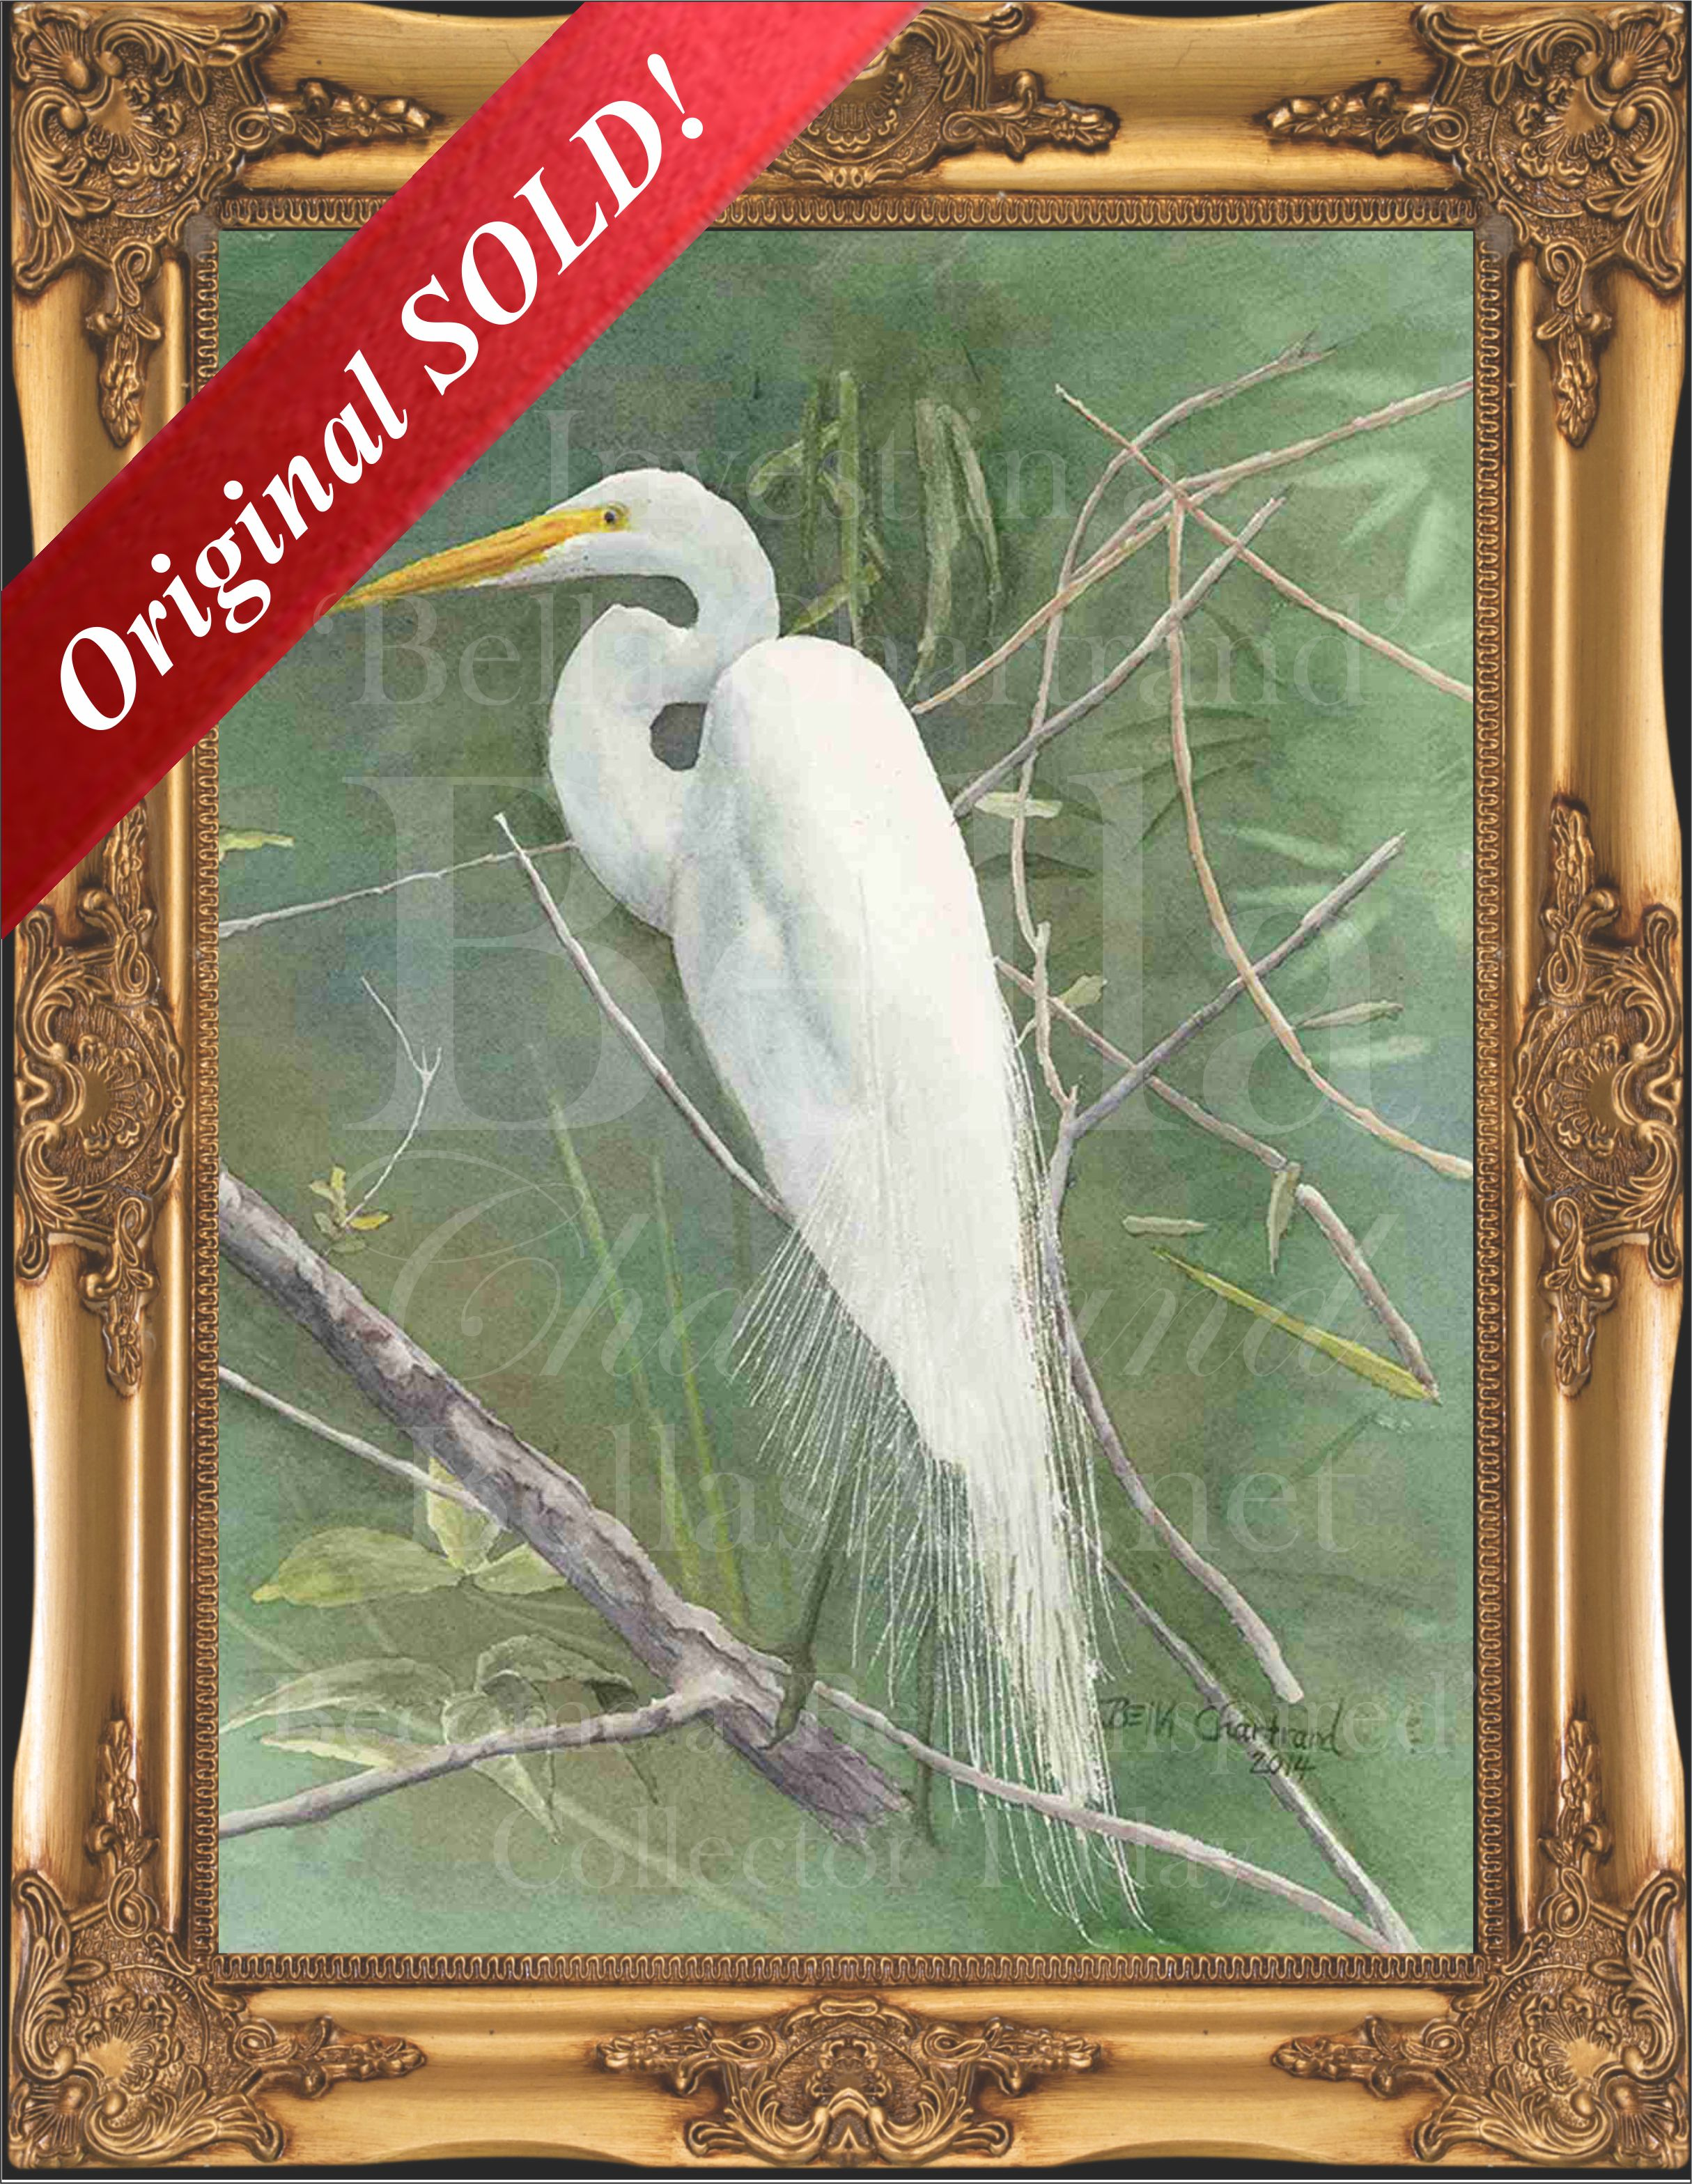 Egret-Watercolor Painting by Bella Chartrand from Survival Reality TV Show Utopia